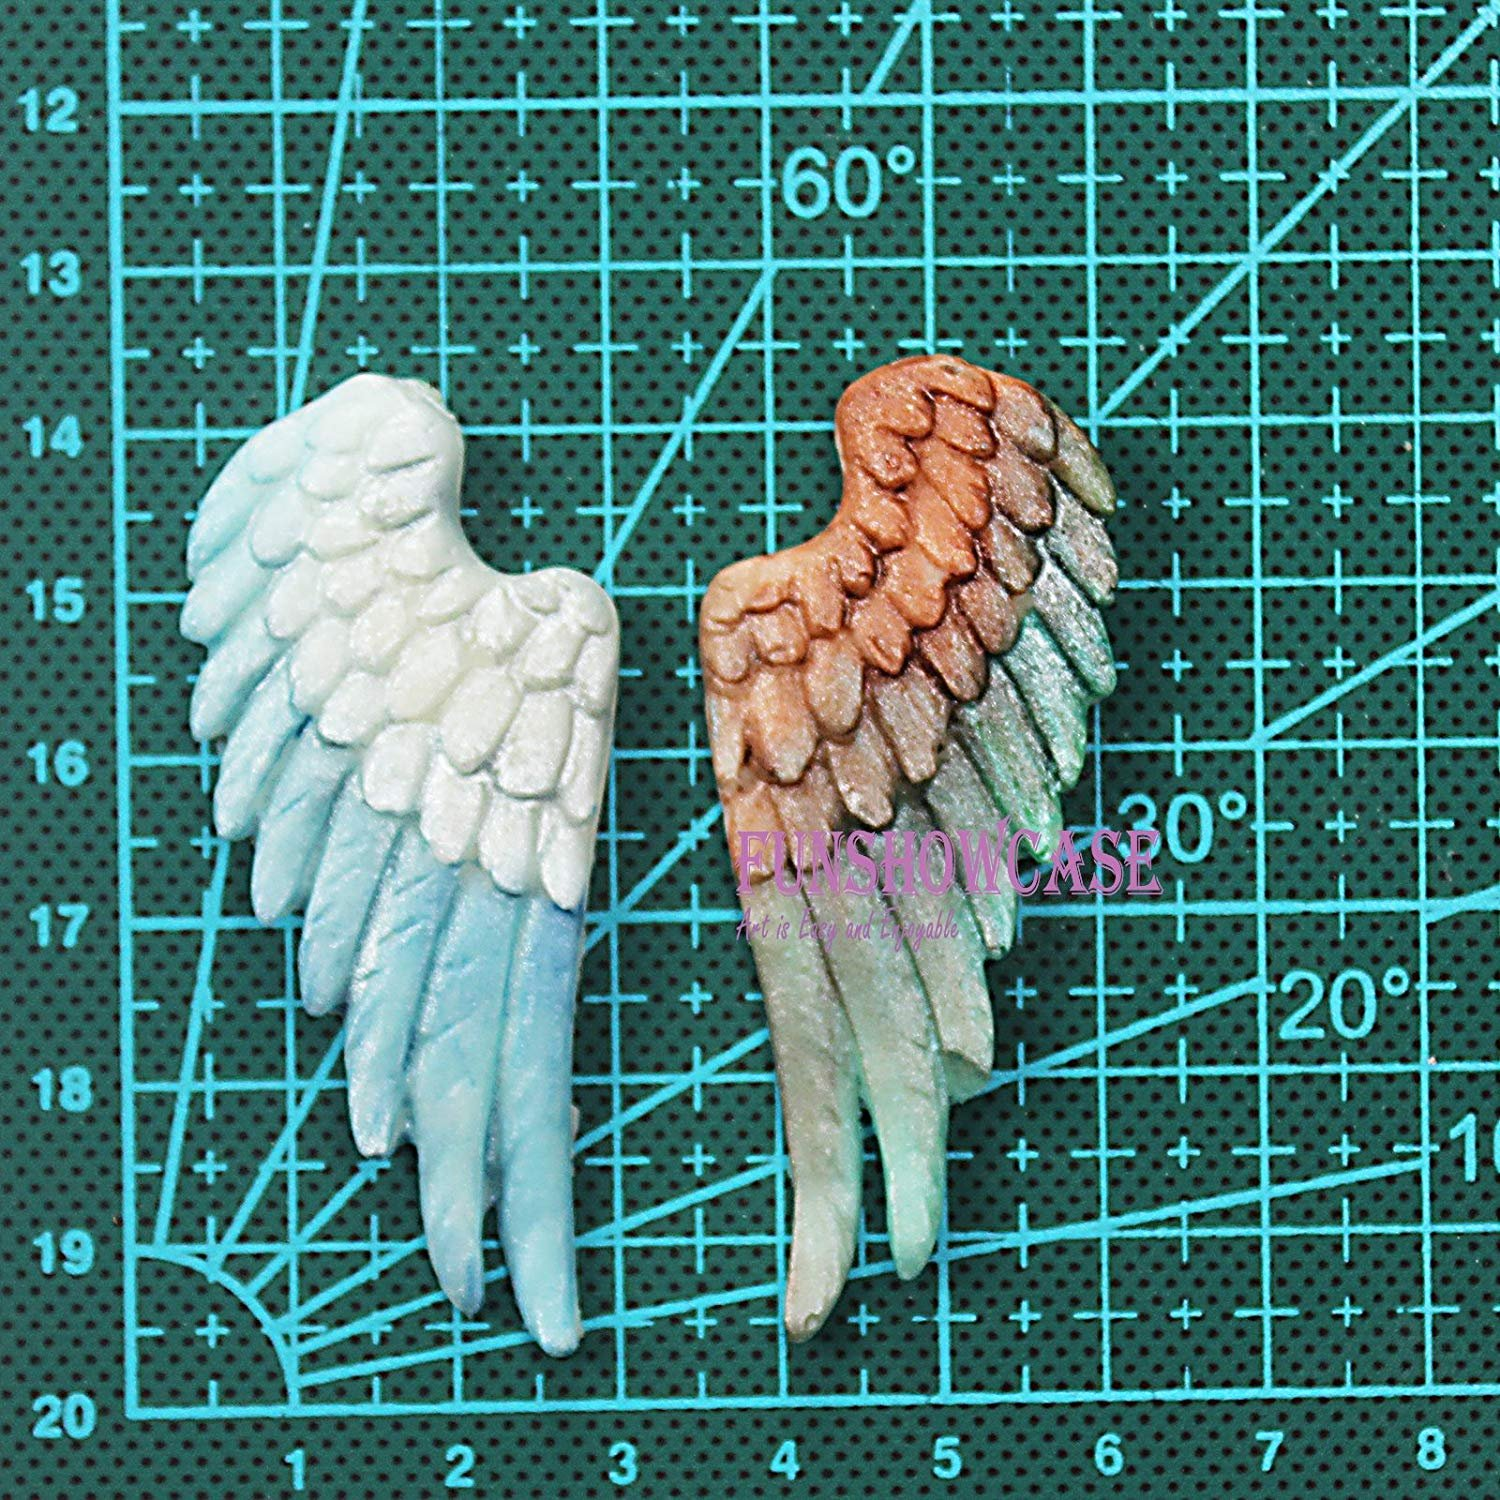 Gum Paste COMIART Cherub Angels Wing Silicone Mould for Cake//Cupcake Decorating,Sugar Craft Chocolate Soap Art Butter Resin,Polymer Clay Fimo PMC Non Stick Sugar Paste Fondant Wax